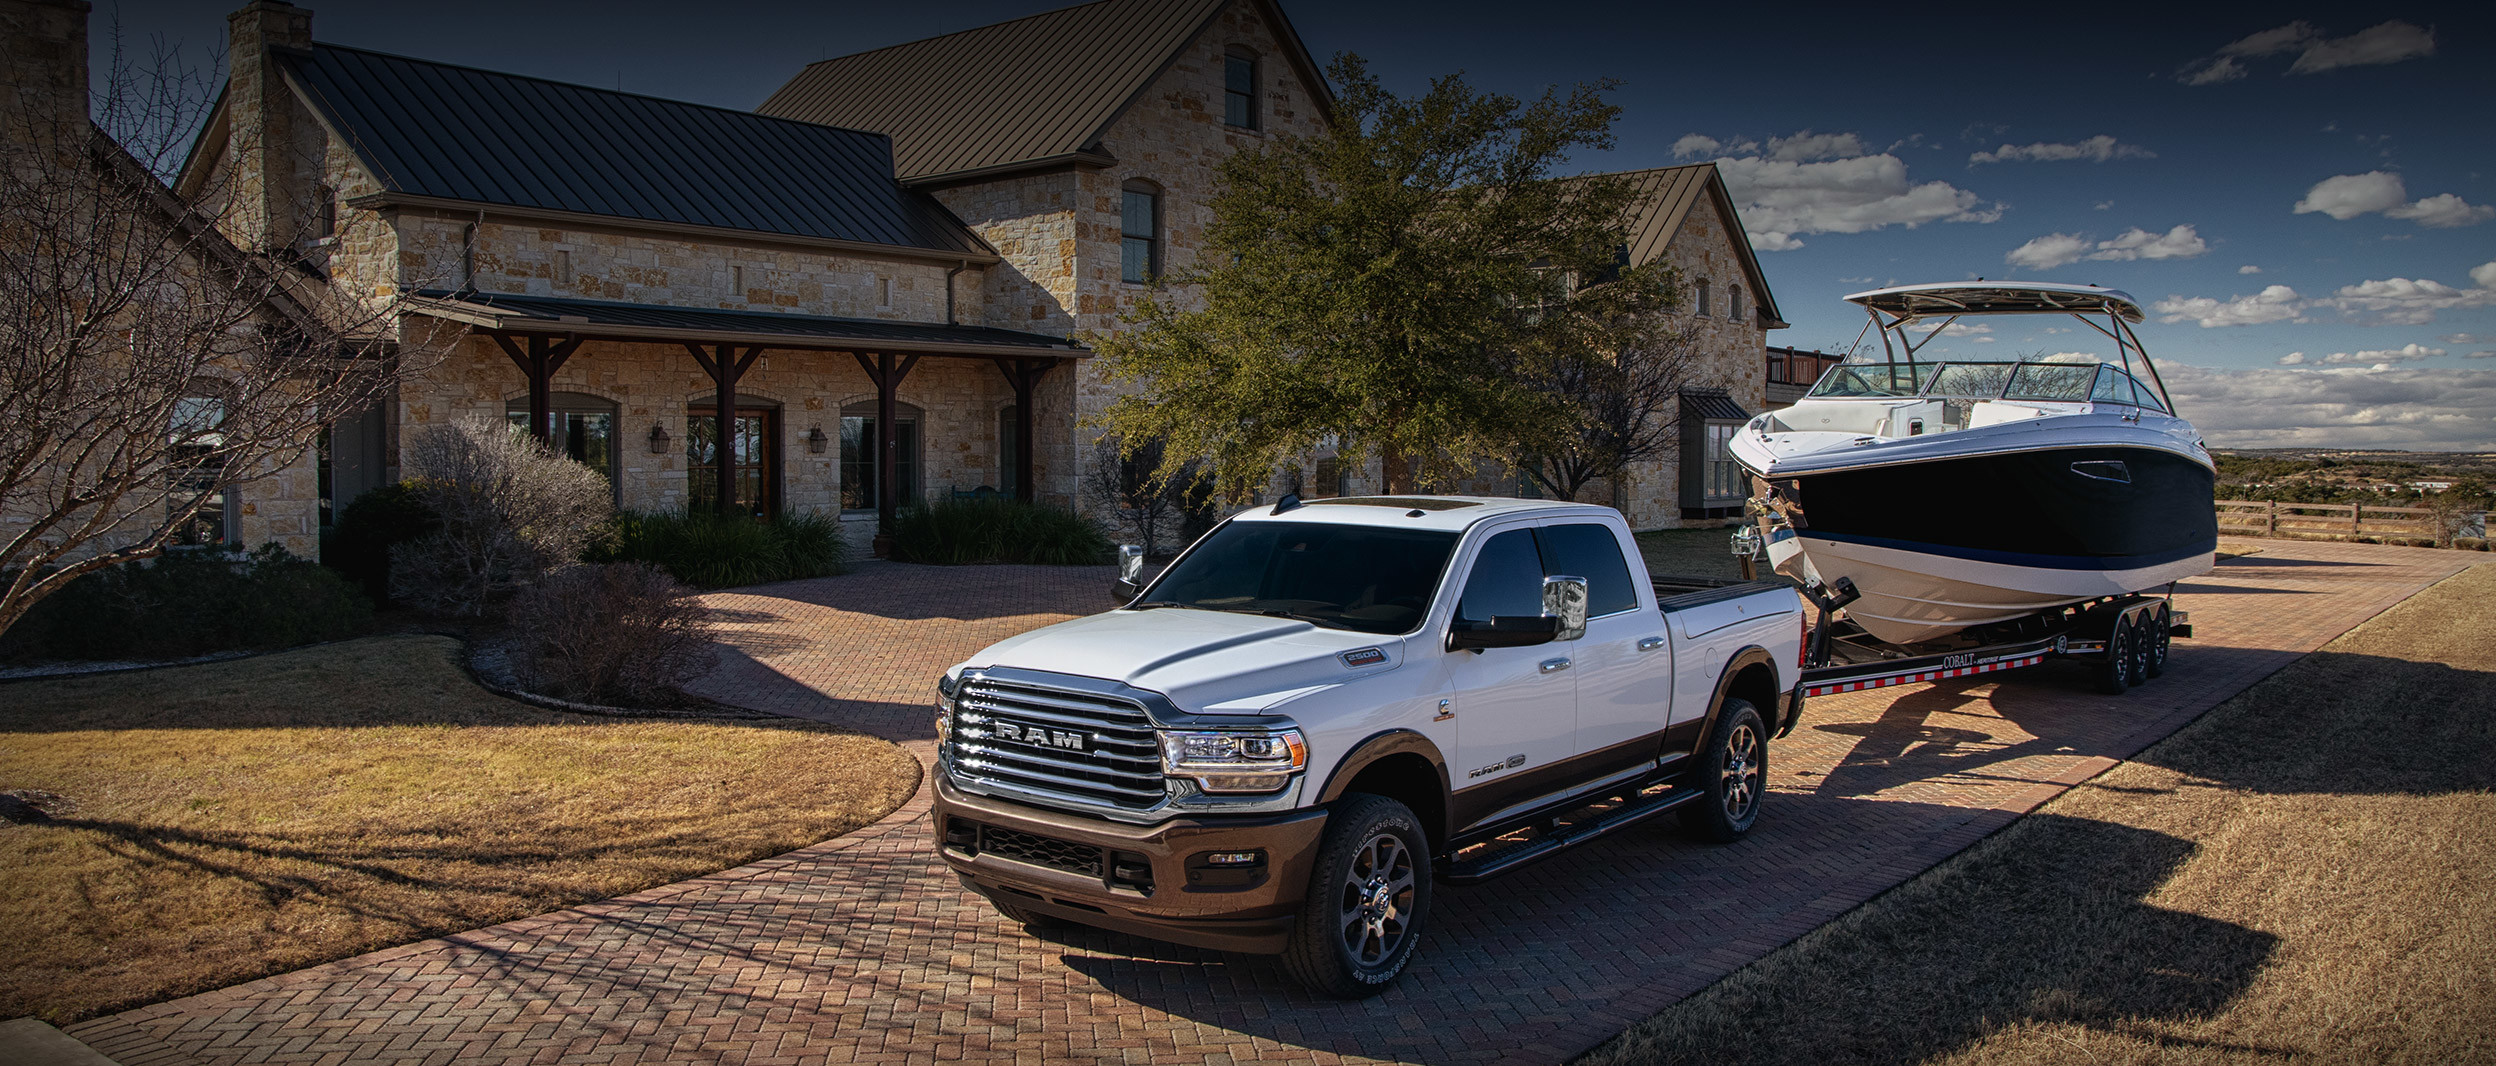 The 2020 Ram 2500 parked on a driveway while towing a boat